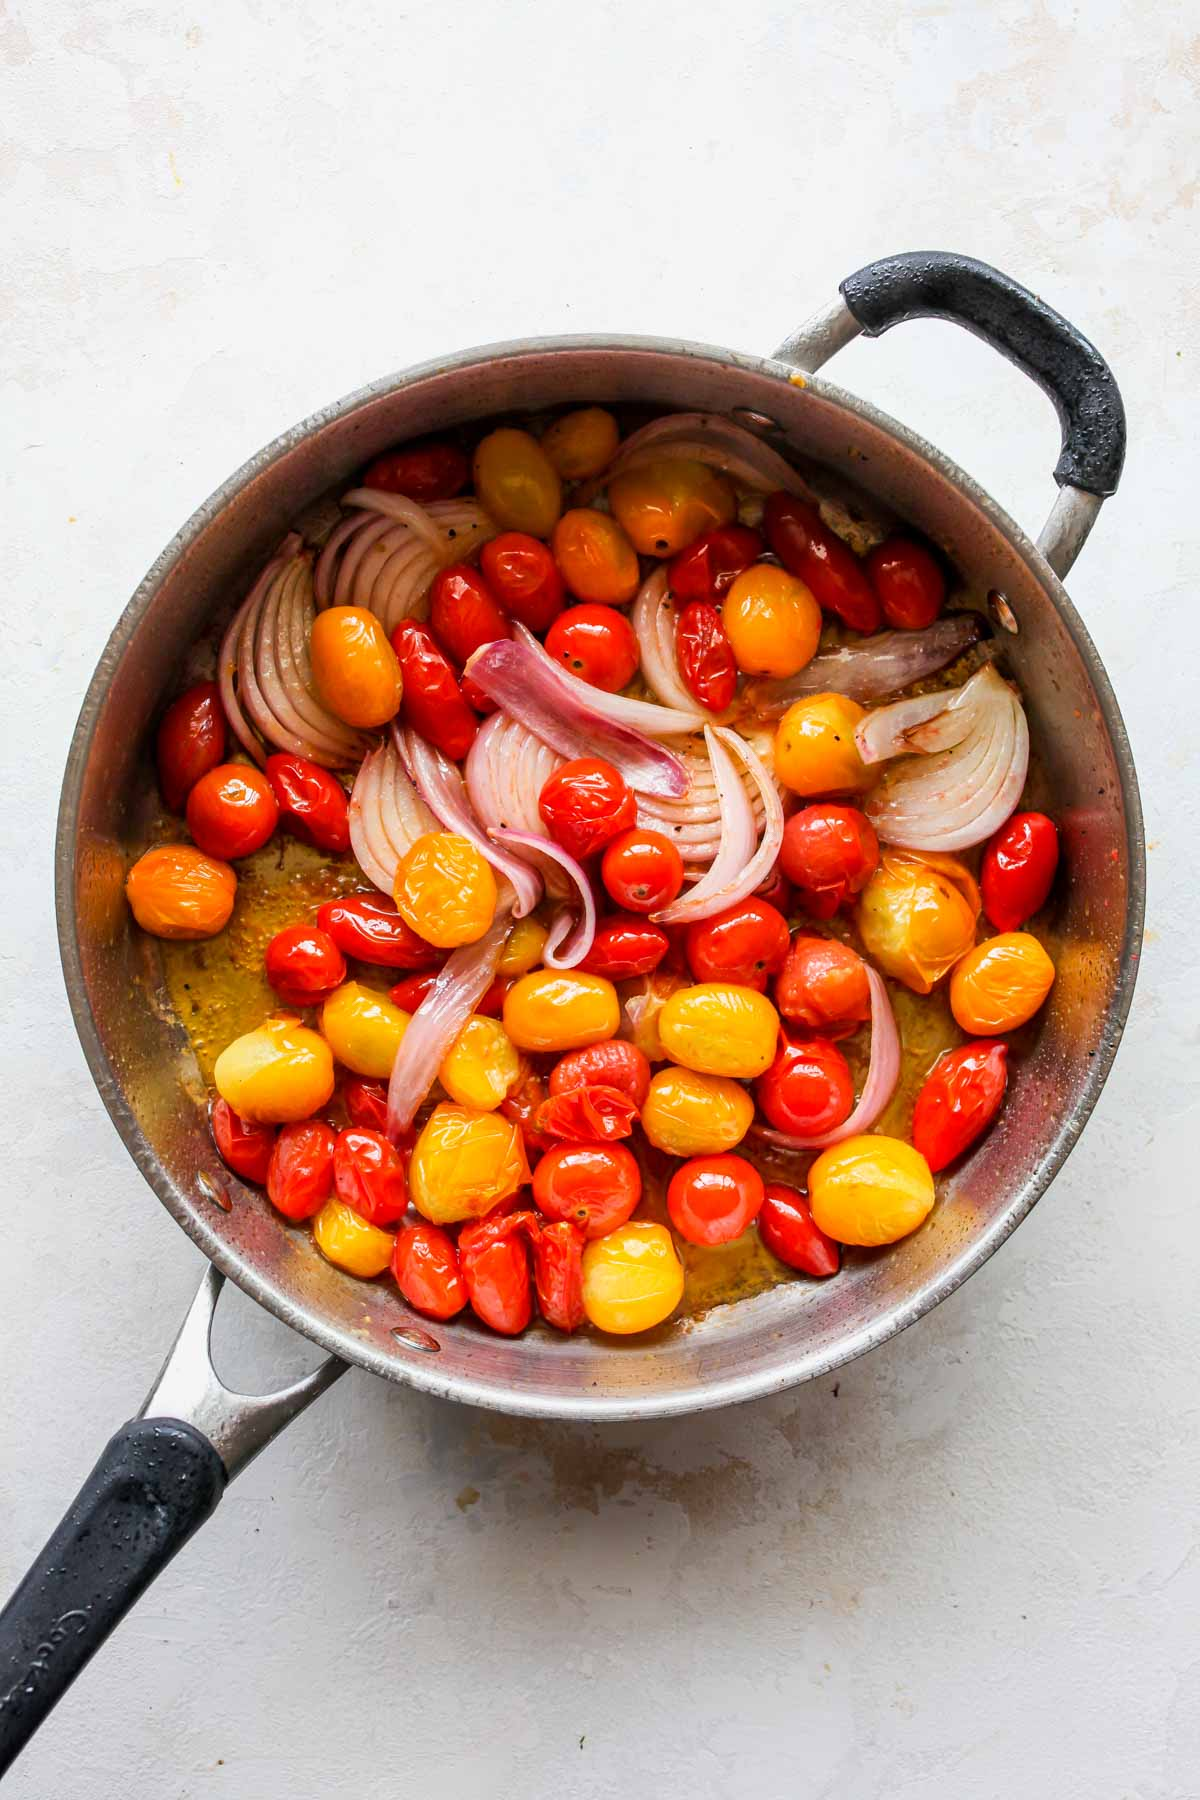 Cherry tomatoes and onions sautéing in a skillet